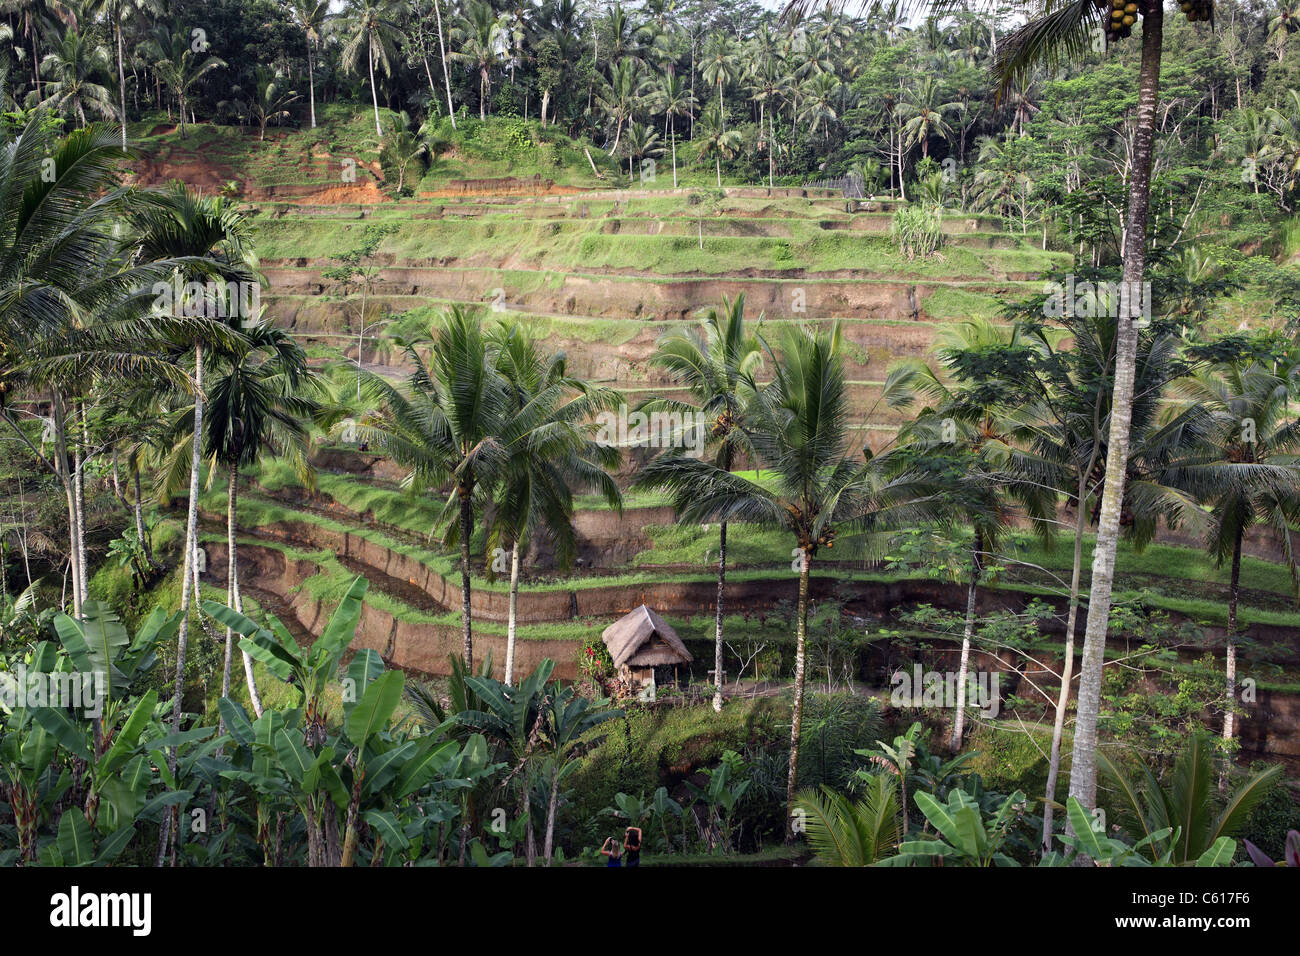 Rice terraces in Tegal Lalang. - Stock Image